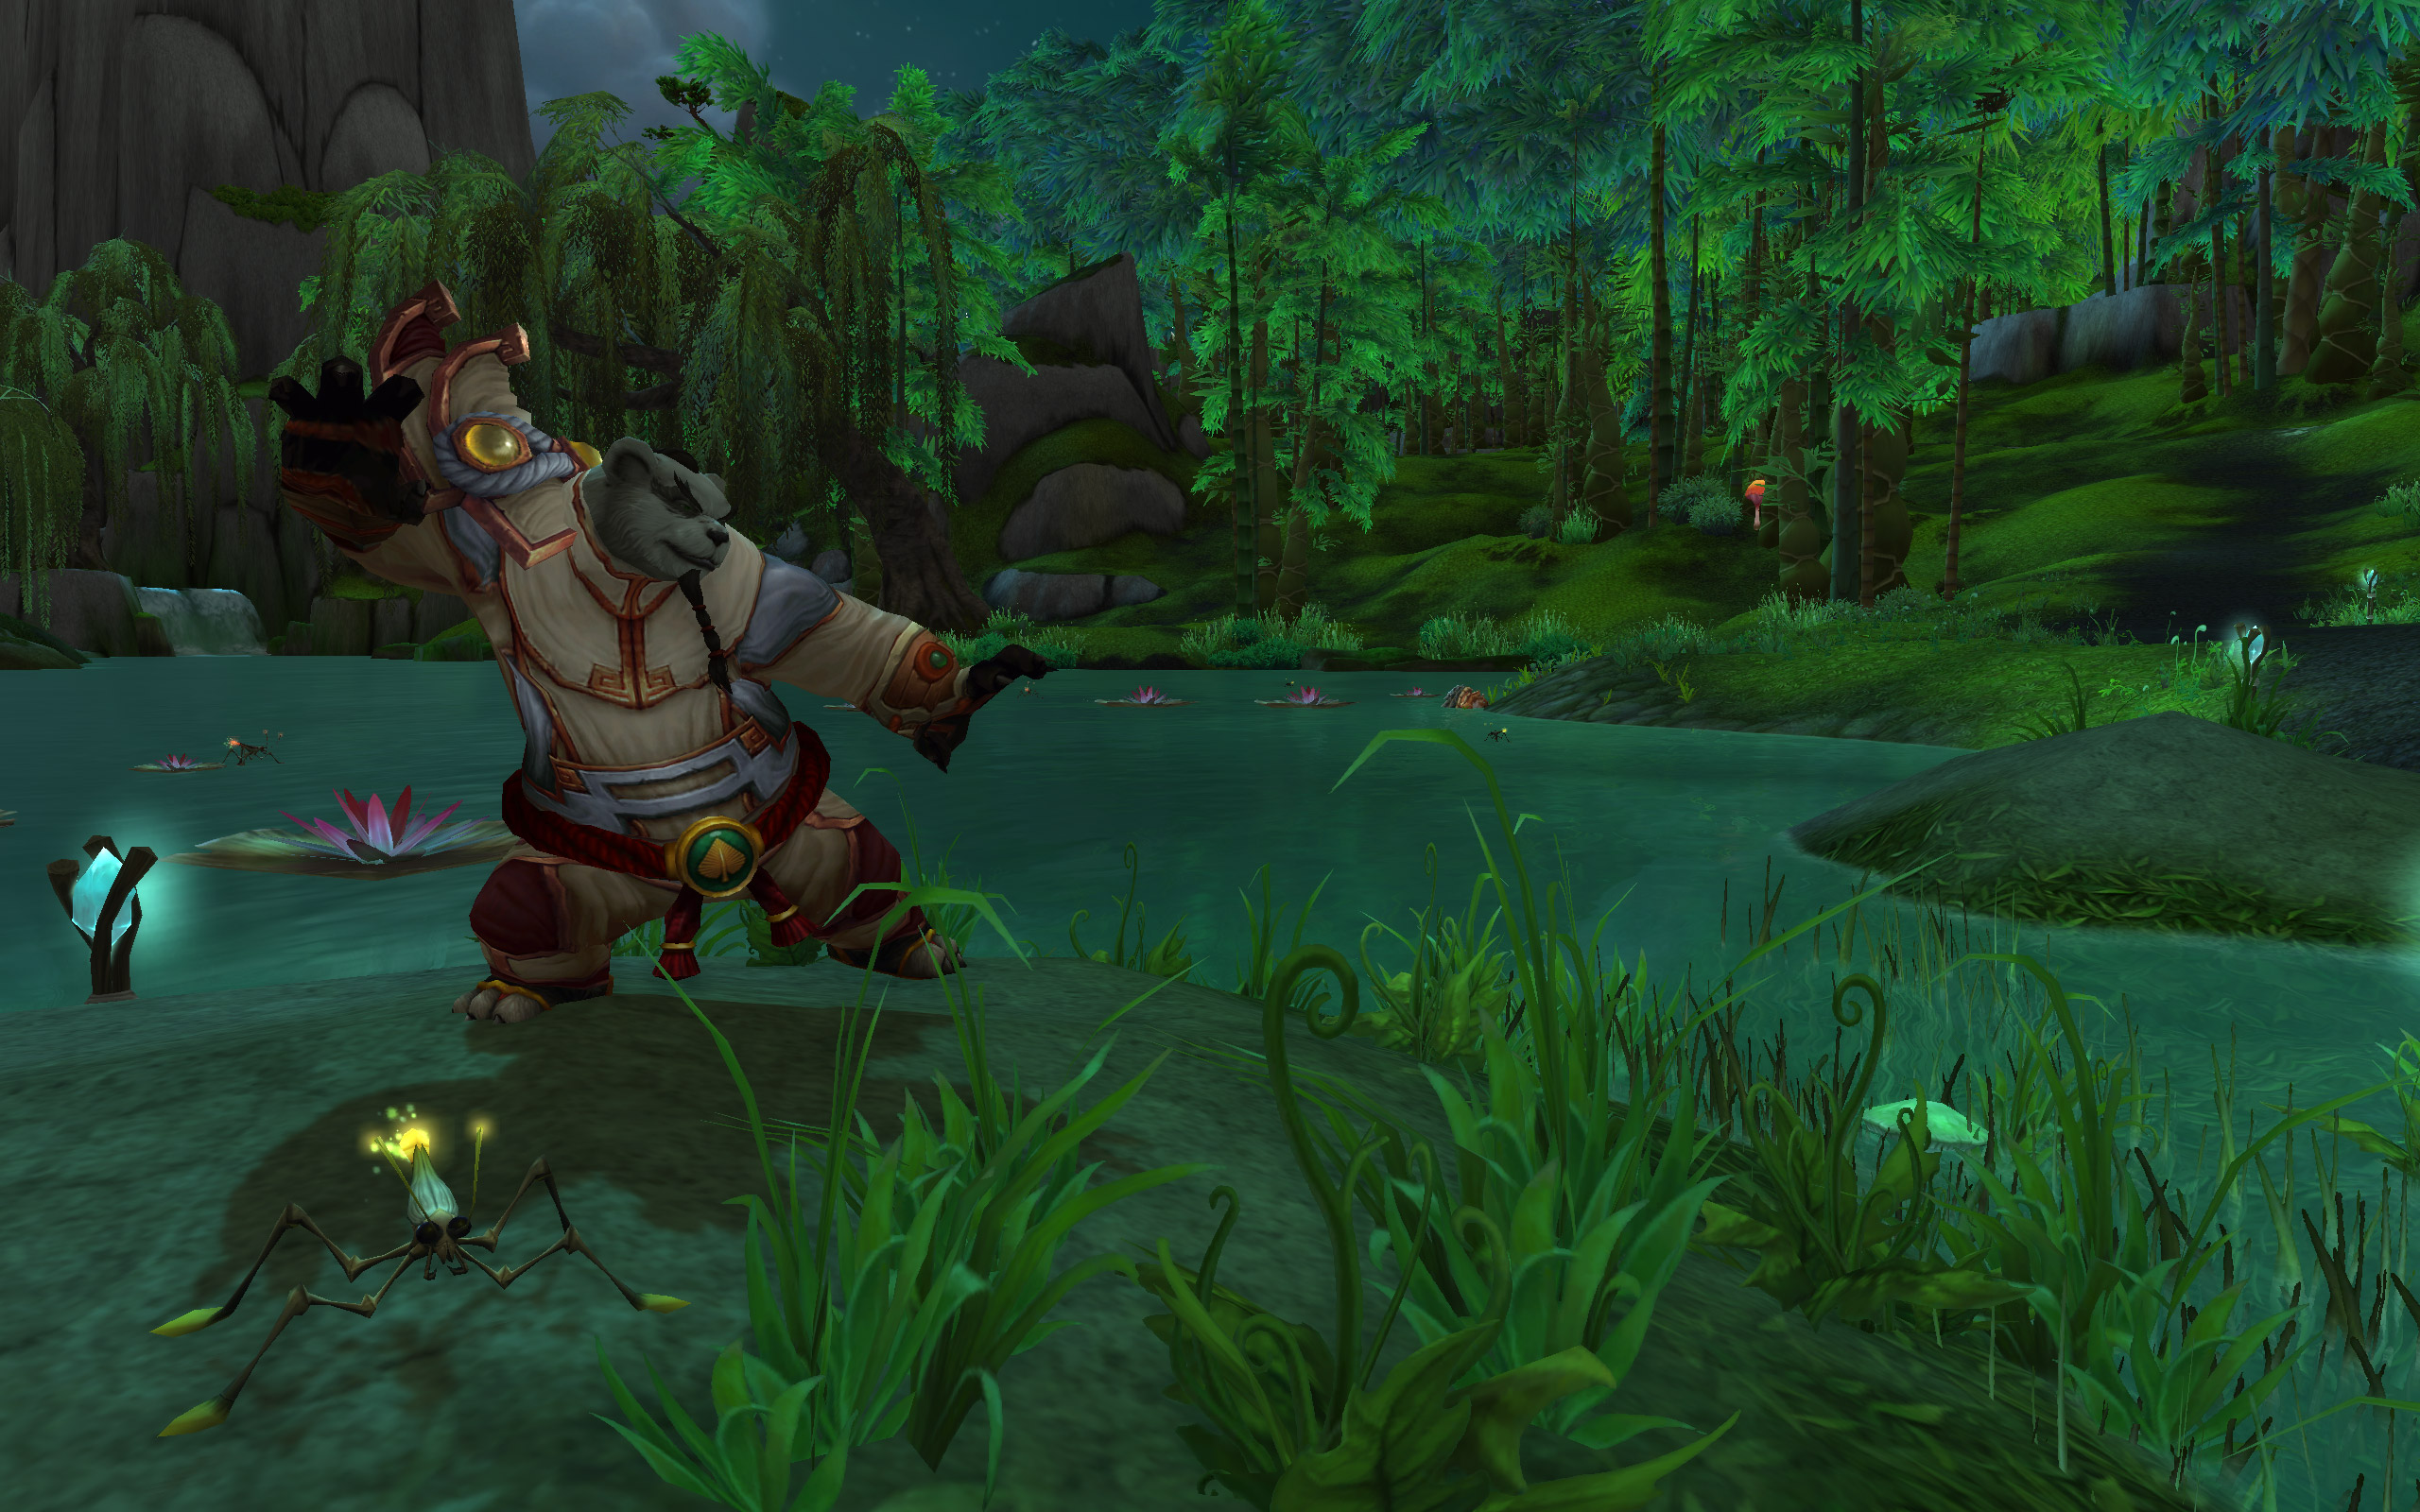 A Pandaren monk in Mists of Pandaria